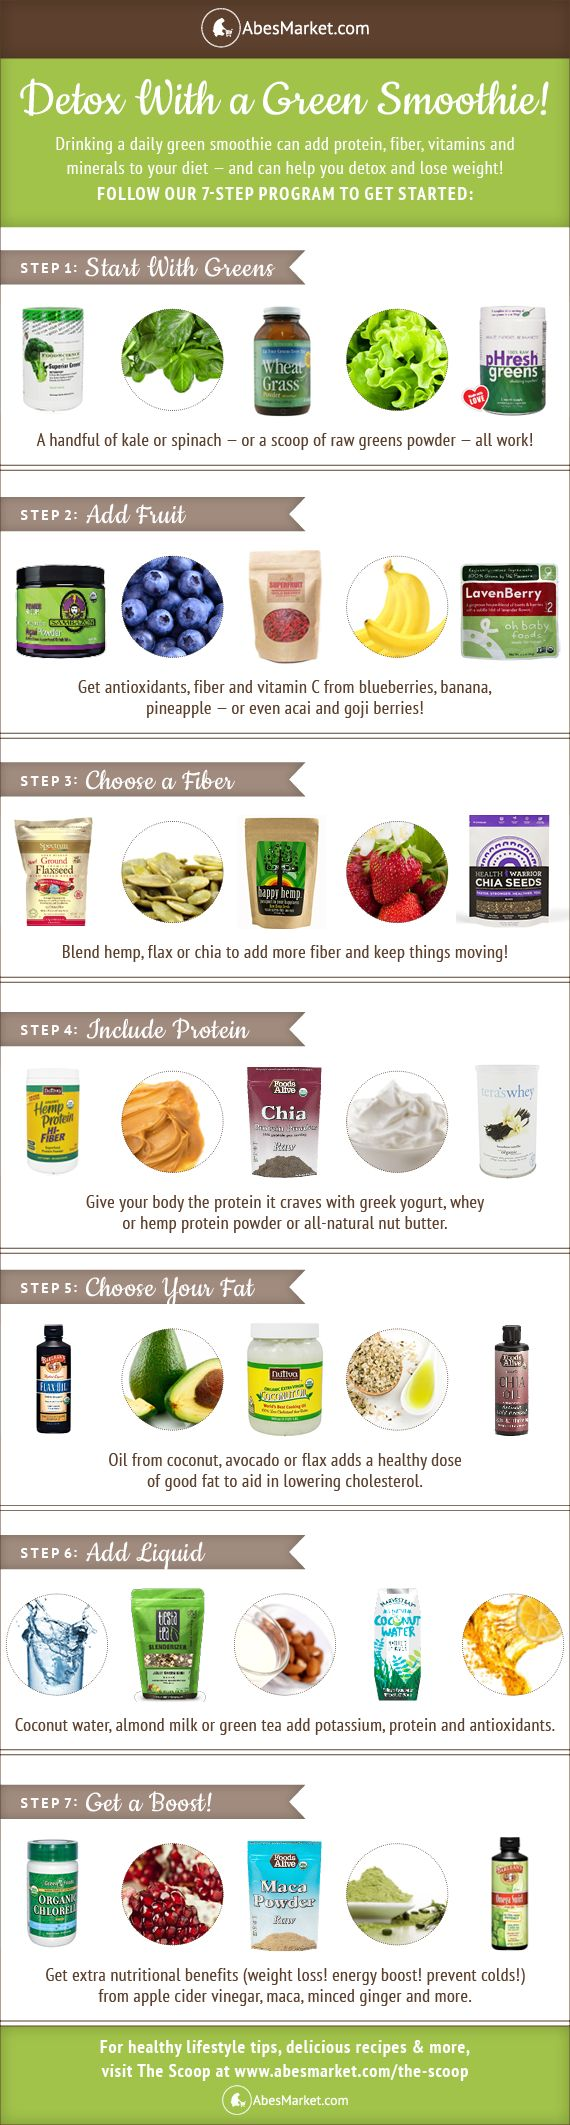 The Scoop   A Daily Detox Green Smoothie in 7 Easy Steps   Abe's Market